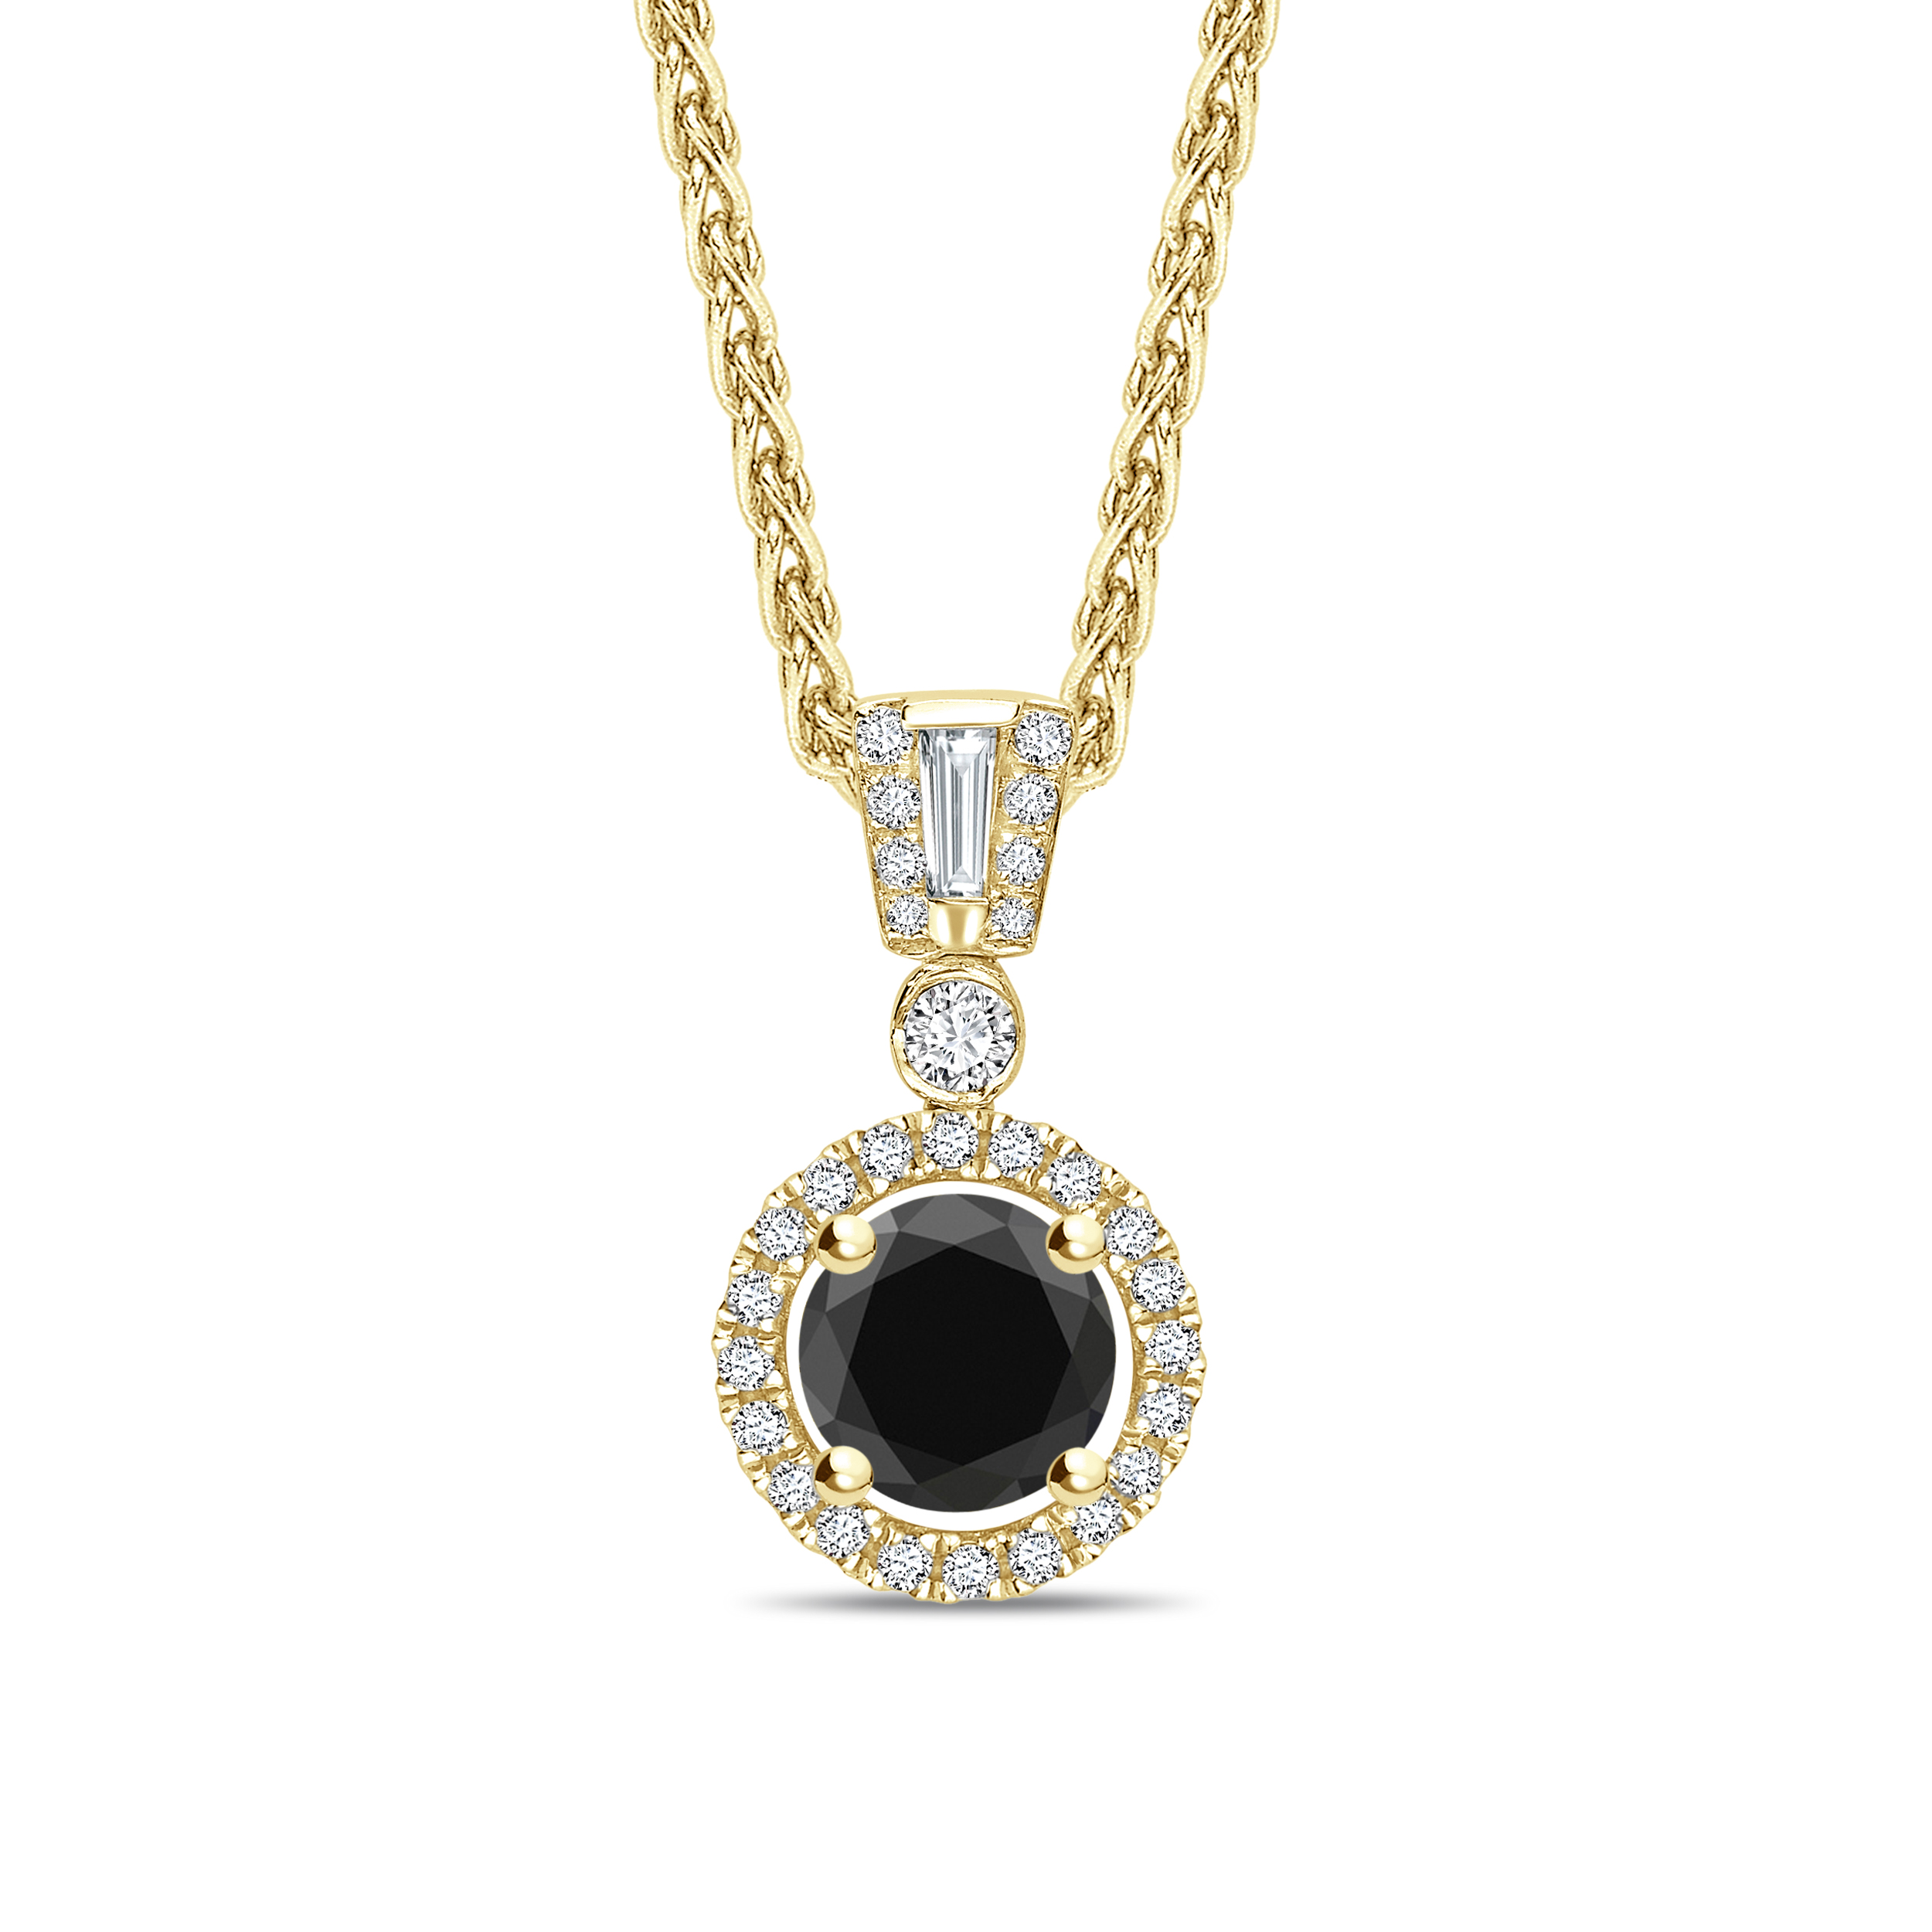 Unique Style Round Cut Black Diamond Solitaire Pendants Nekclace